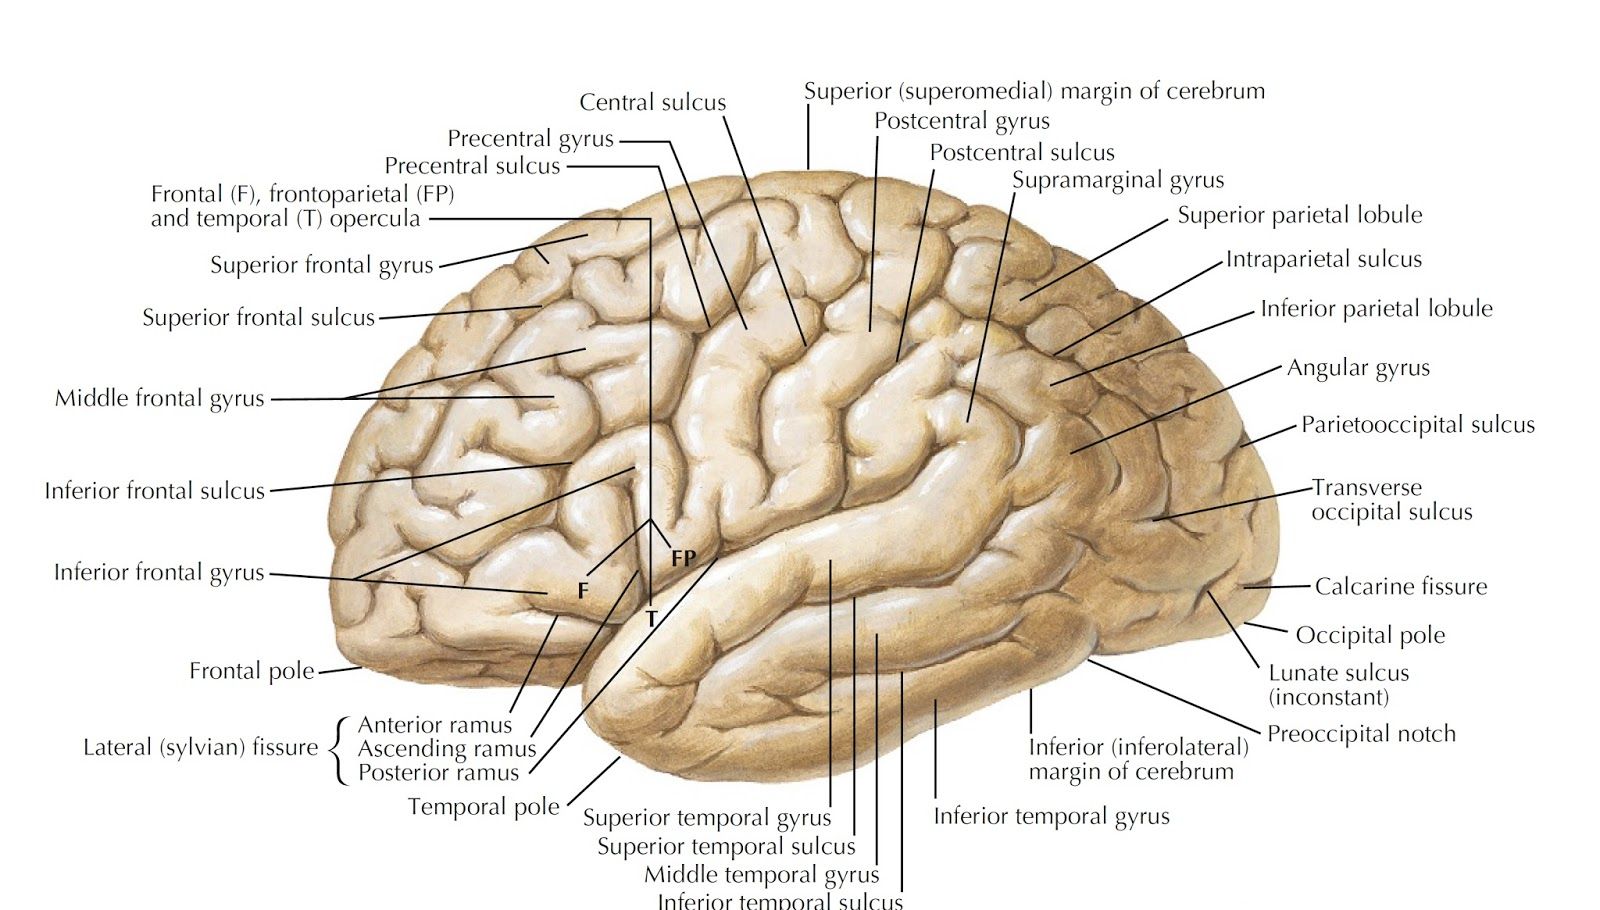 Internal Diagram Of Brain With Labels And Definitions - Wiring ...